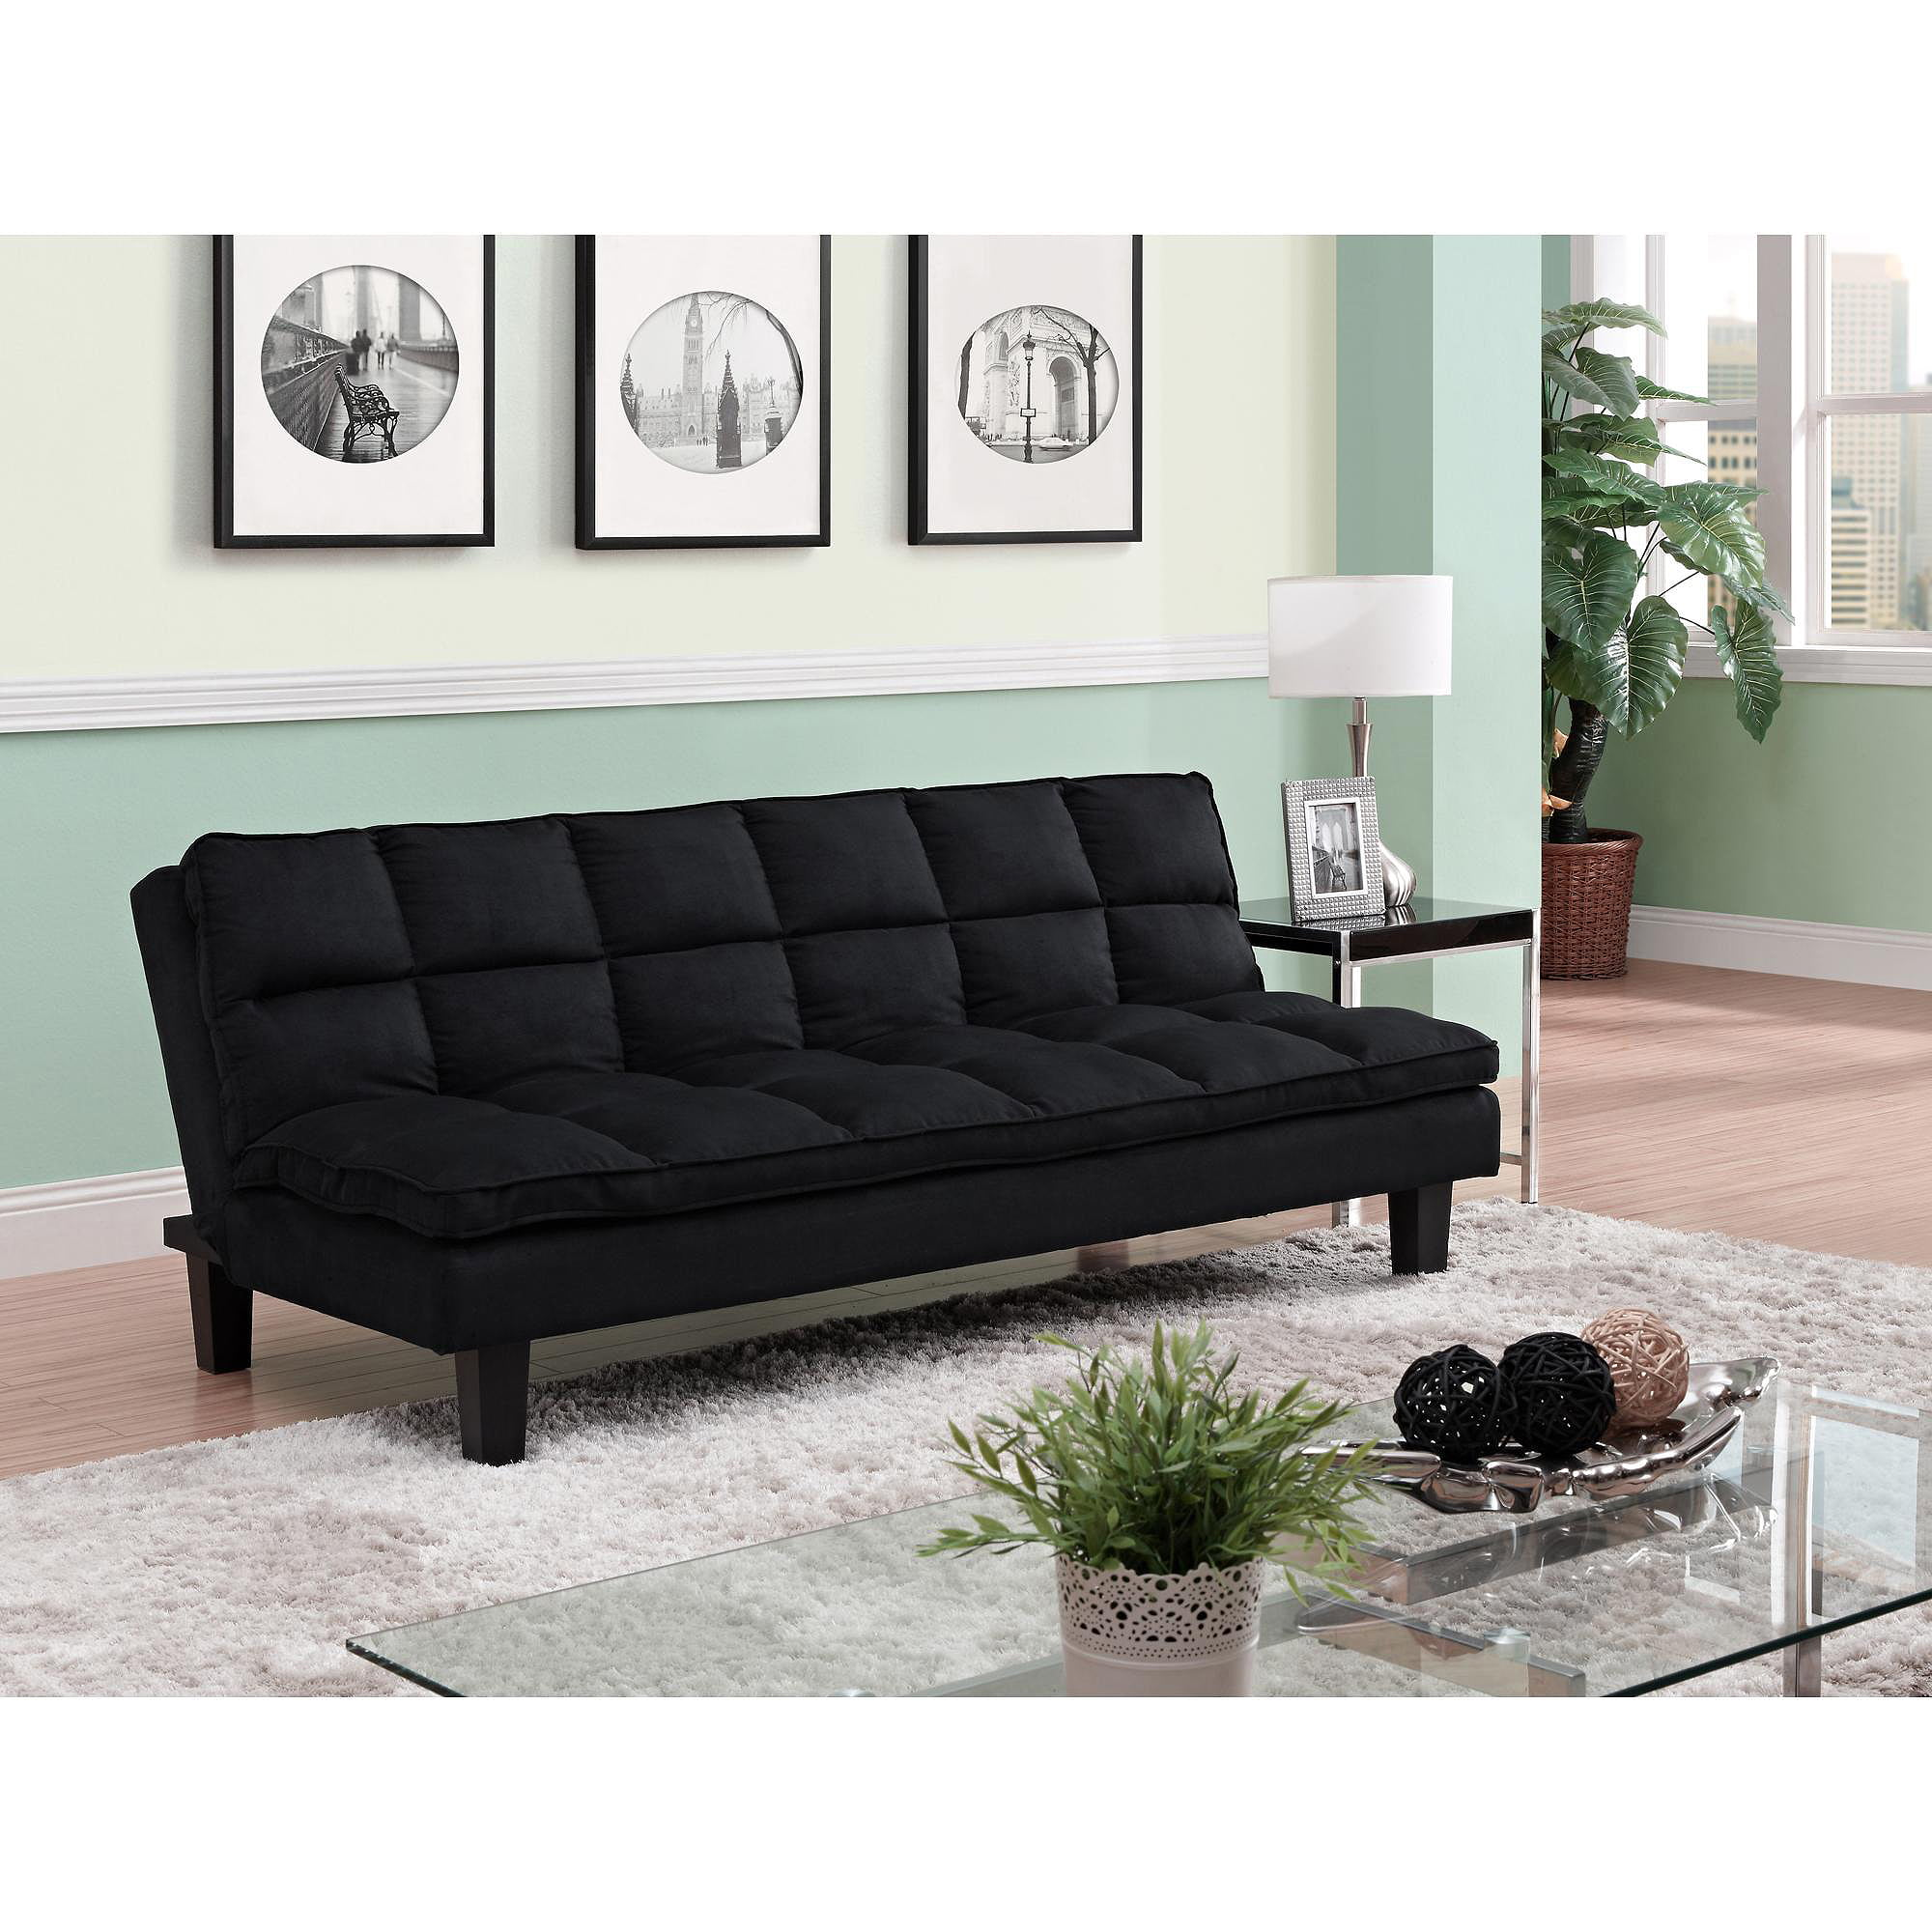 Allegra Pillow Top Futon Black Walmart